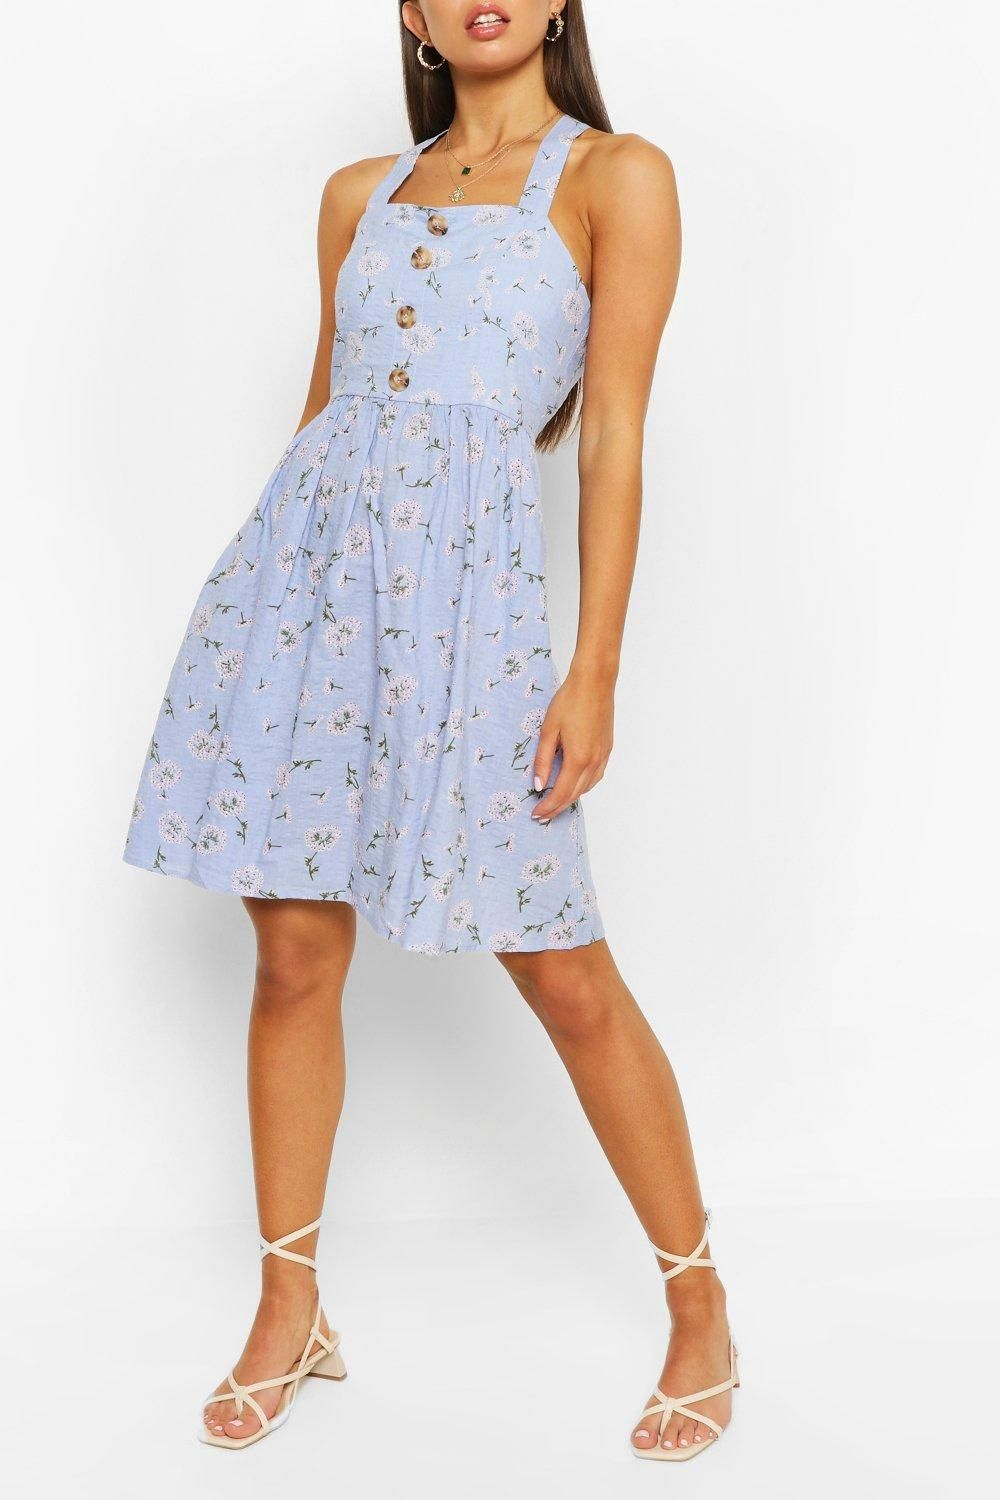 Ring Back Detail Sundress Boohoo In 2021 Casual Dresses For Teens Everyday Dresses Latest Casual Dress [ 1500 x 1000 Pixel ]